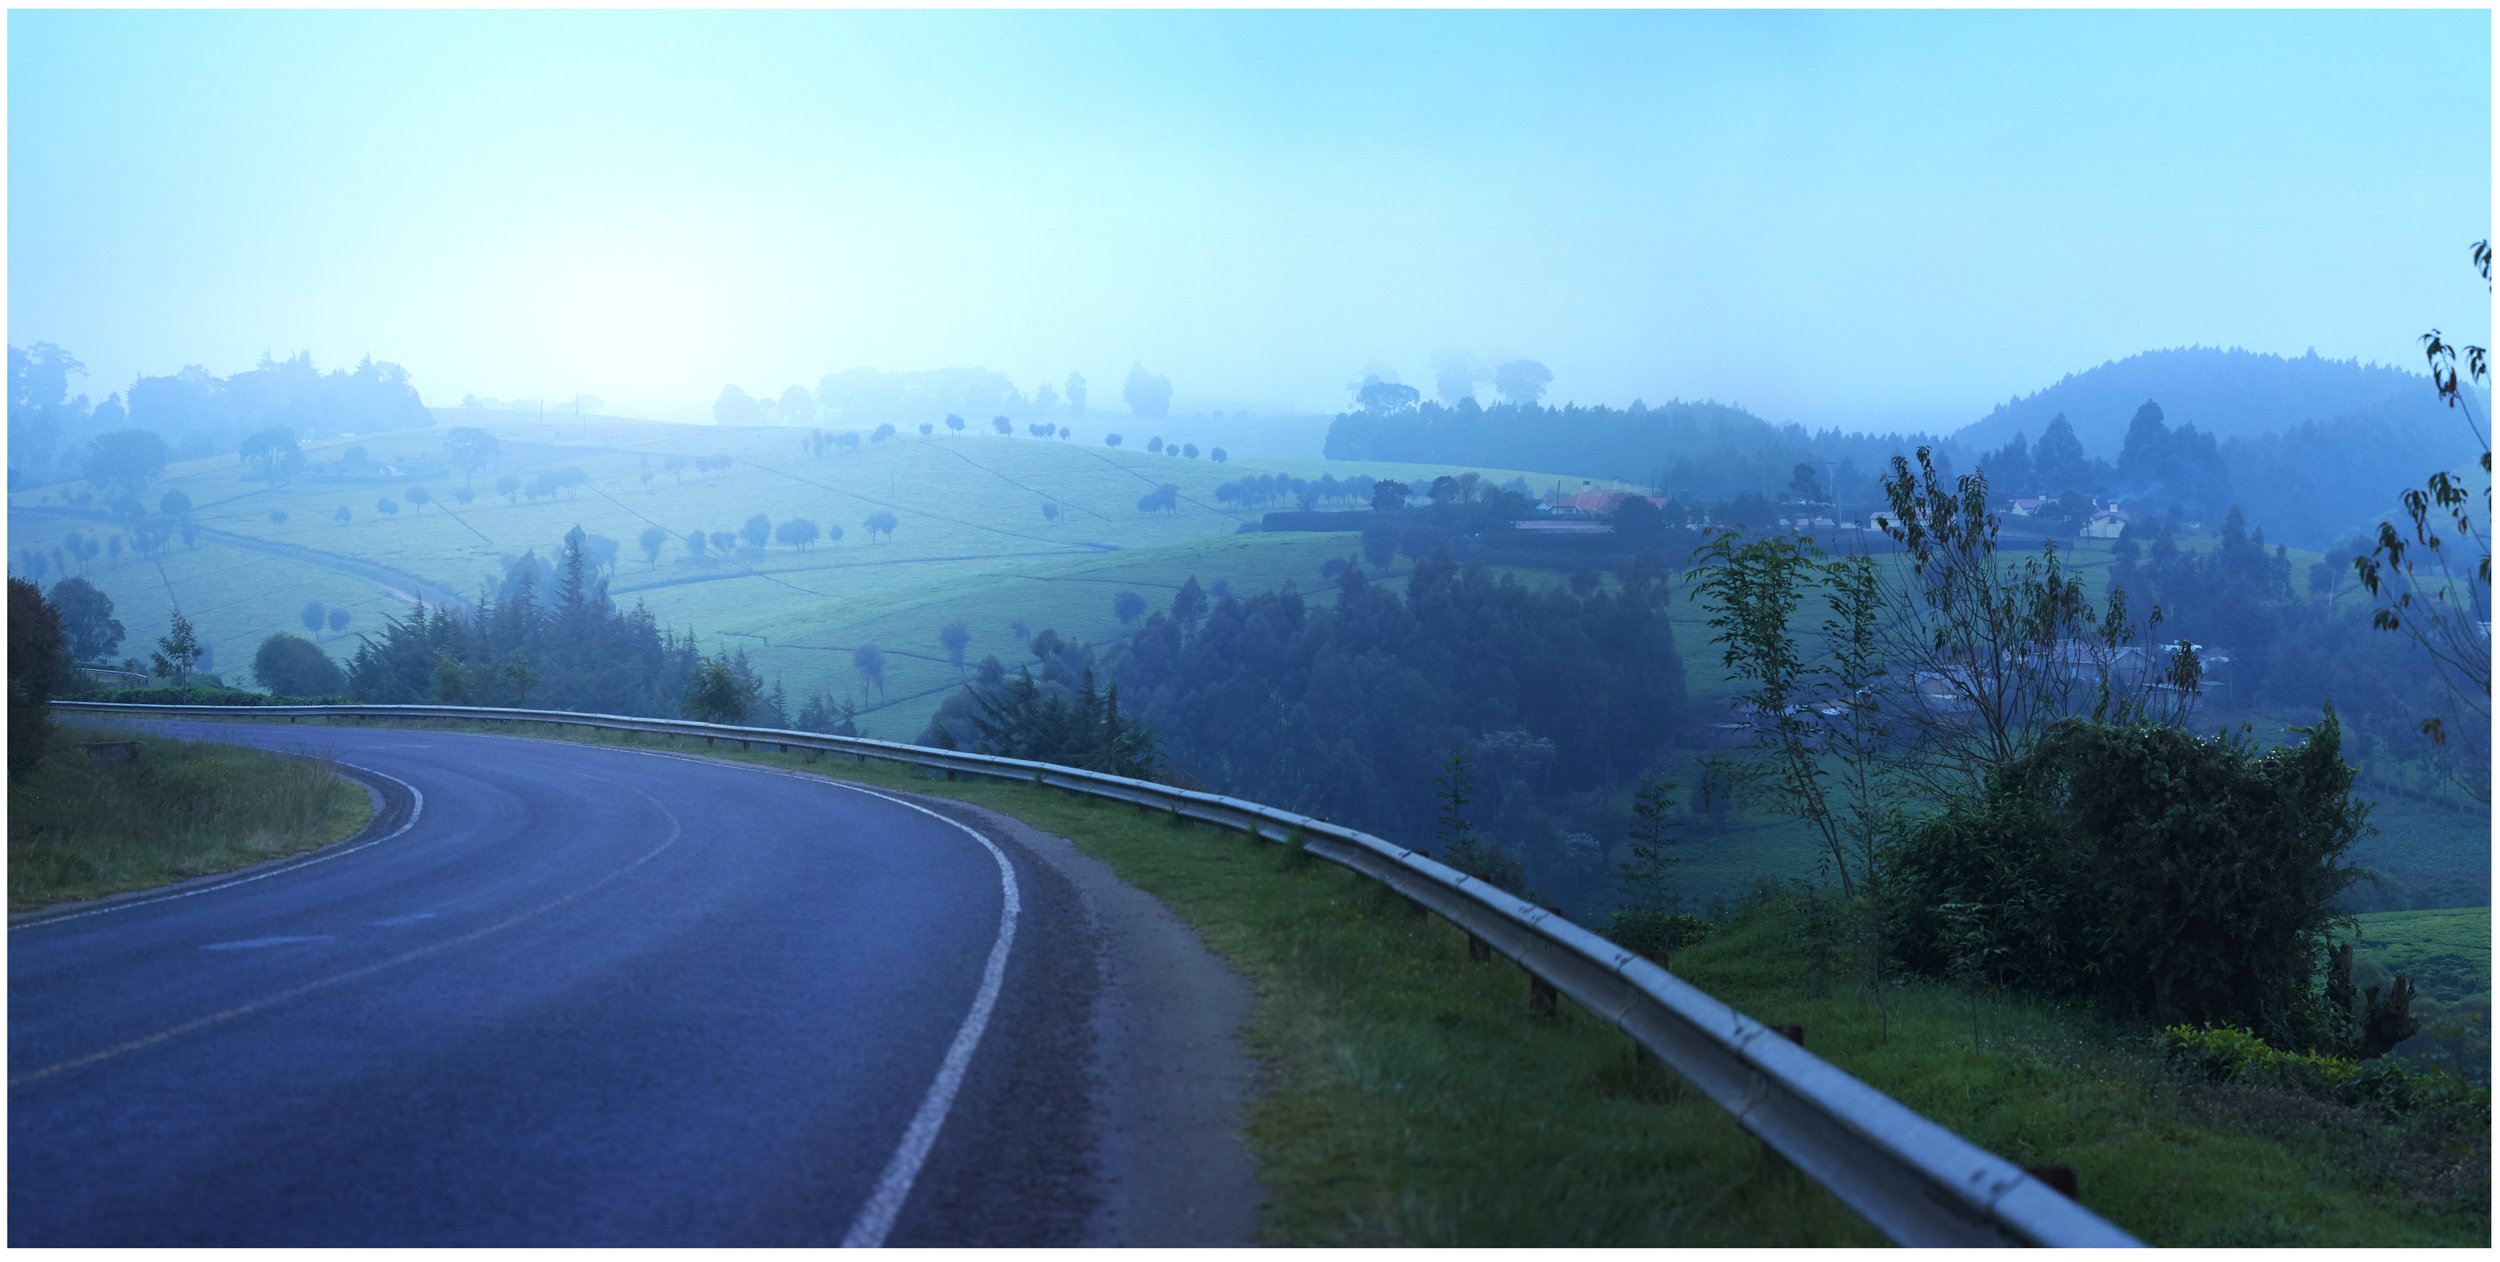 Kiambu-Limuru highway has one of the most beautiful scenaries.